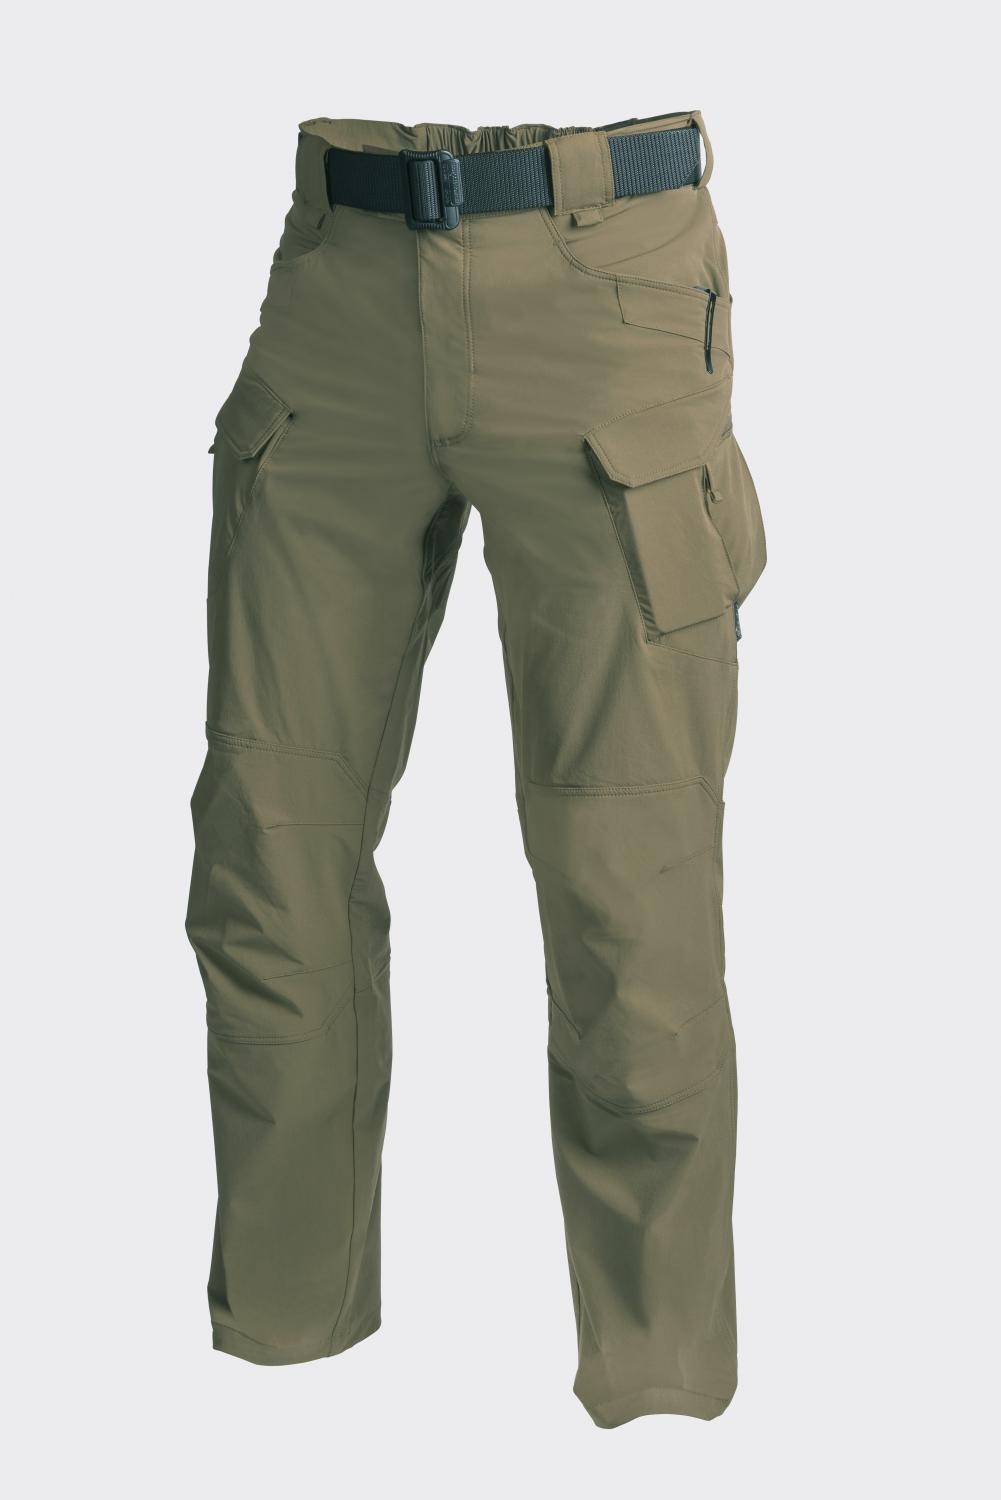 OUTDOOR TACTICAL PANTS - Nylon Adaptive Green